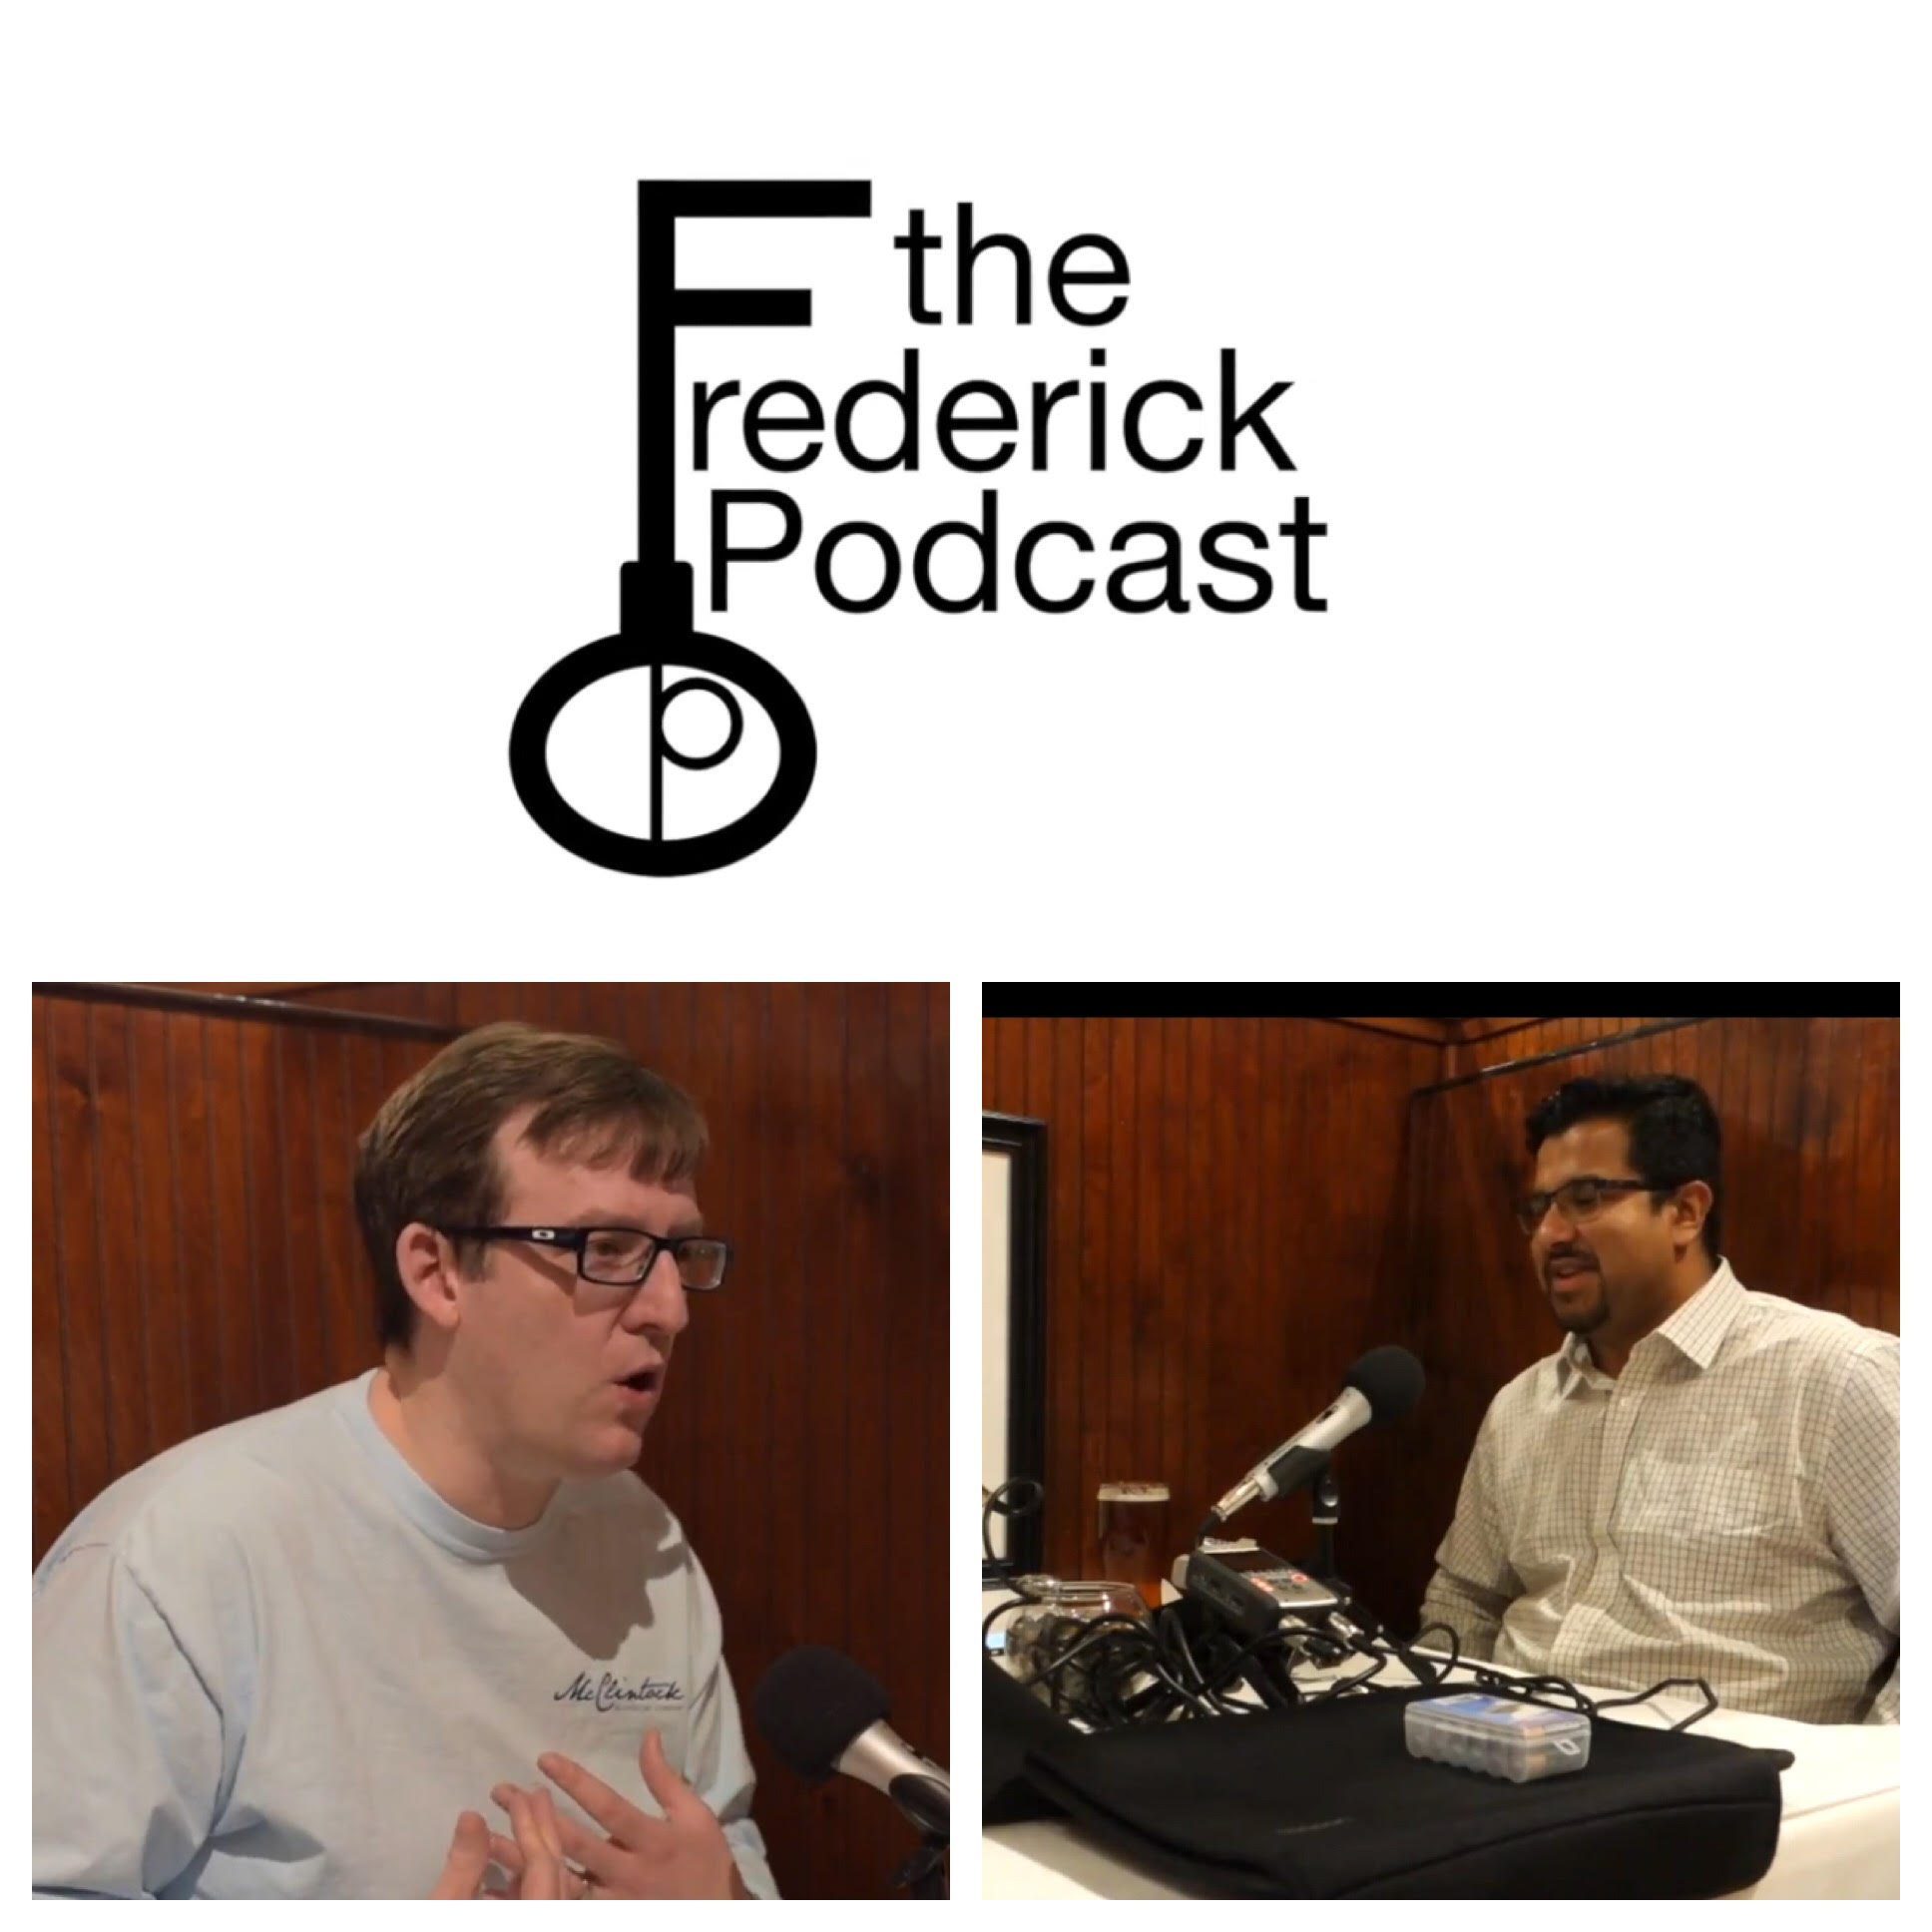 The Frederick Podcast